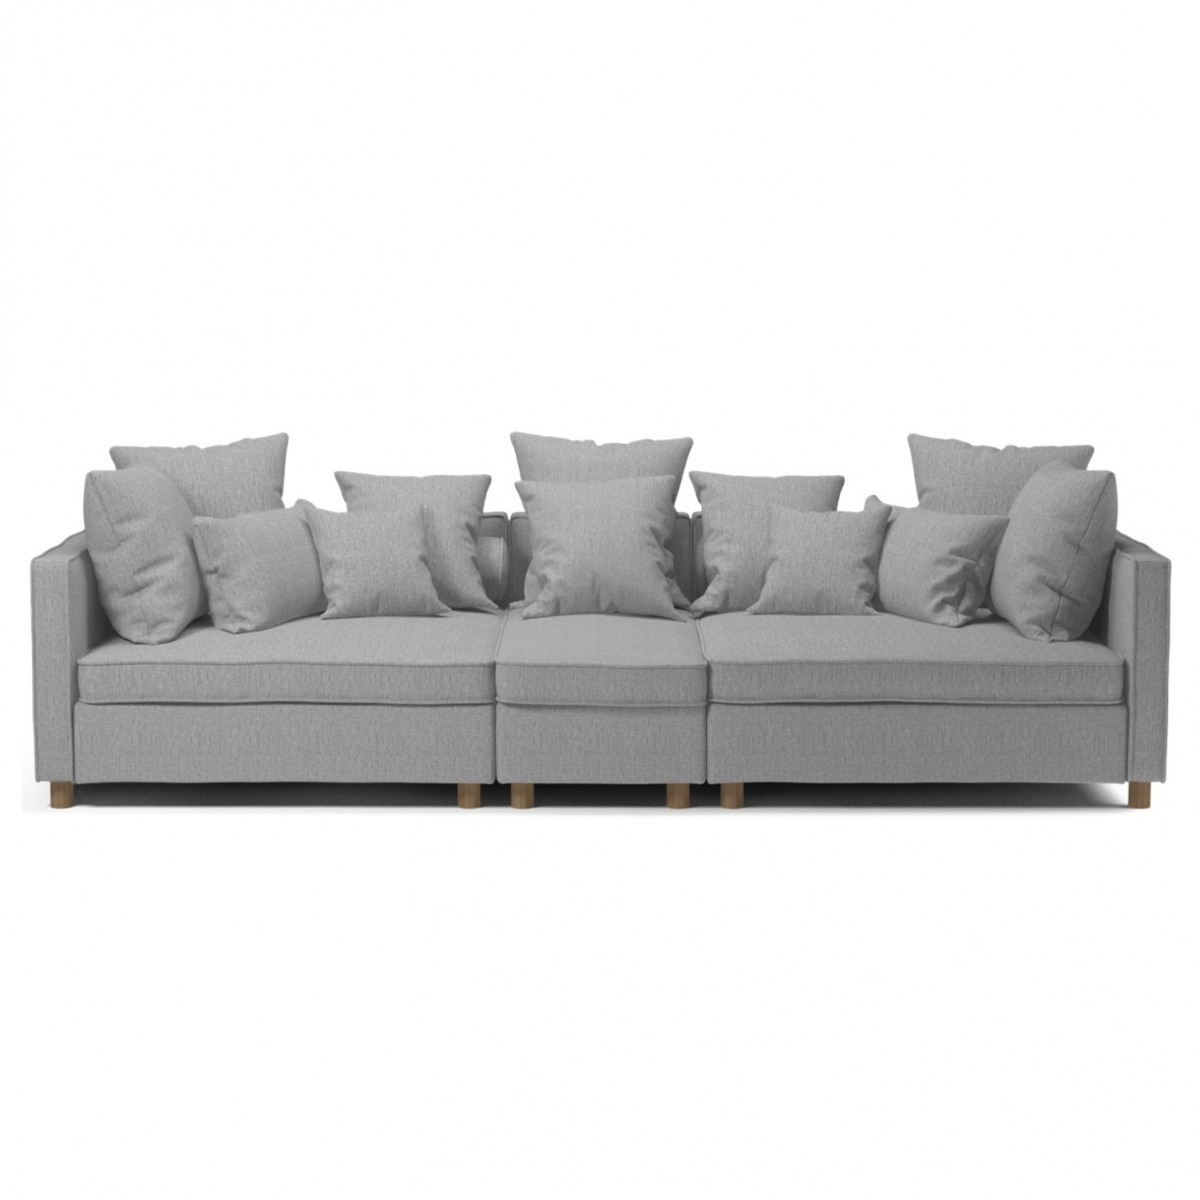 The Big Sofa London Mr Big Sofa 3 Units S Bolia